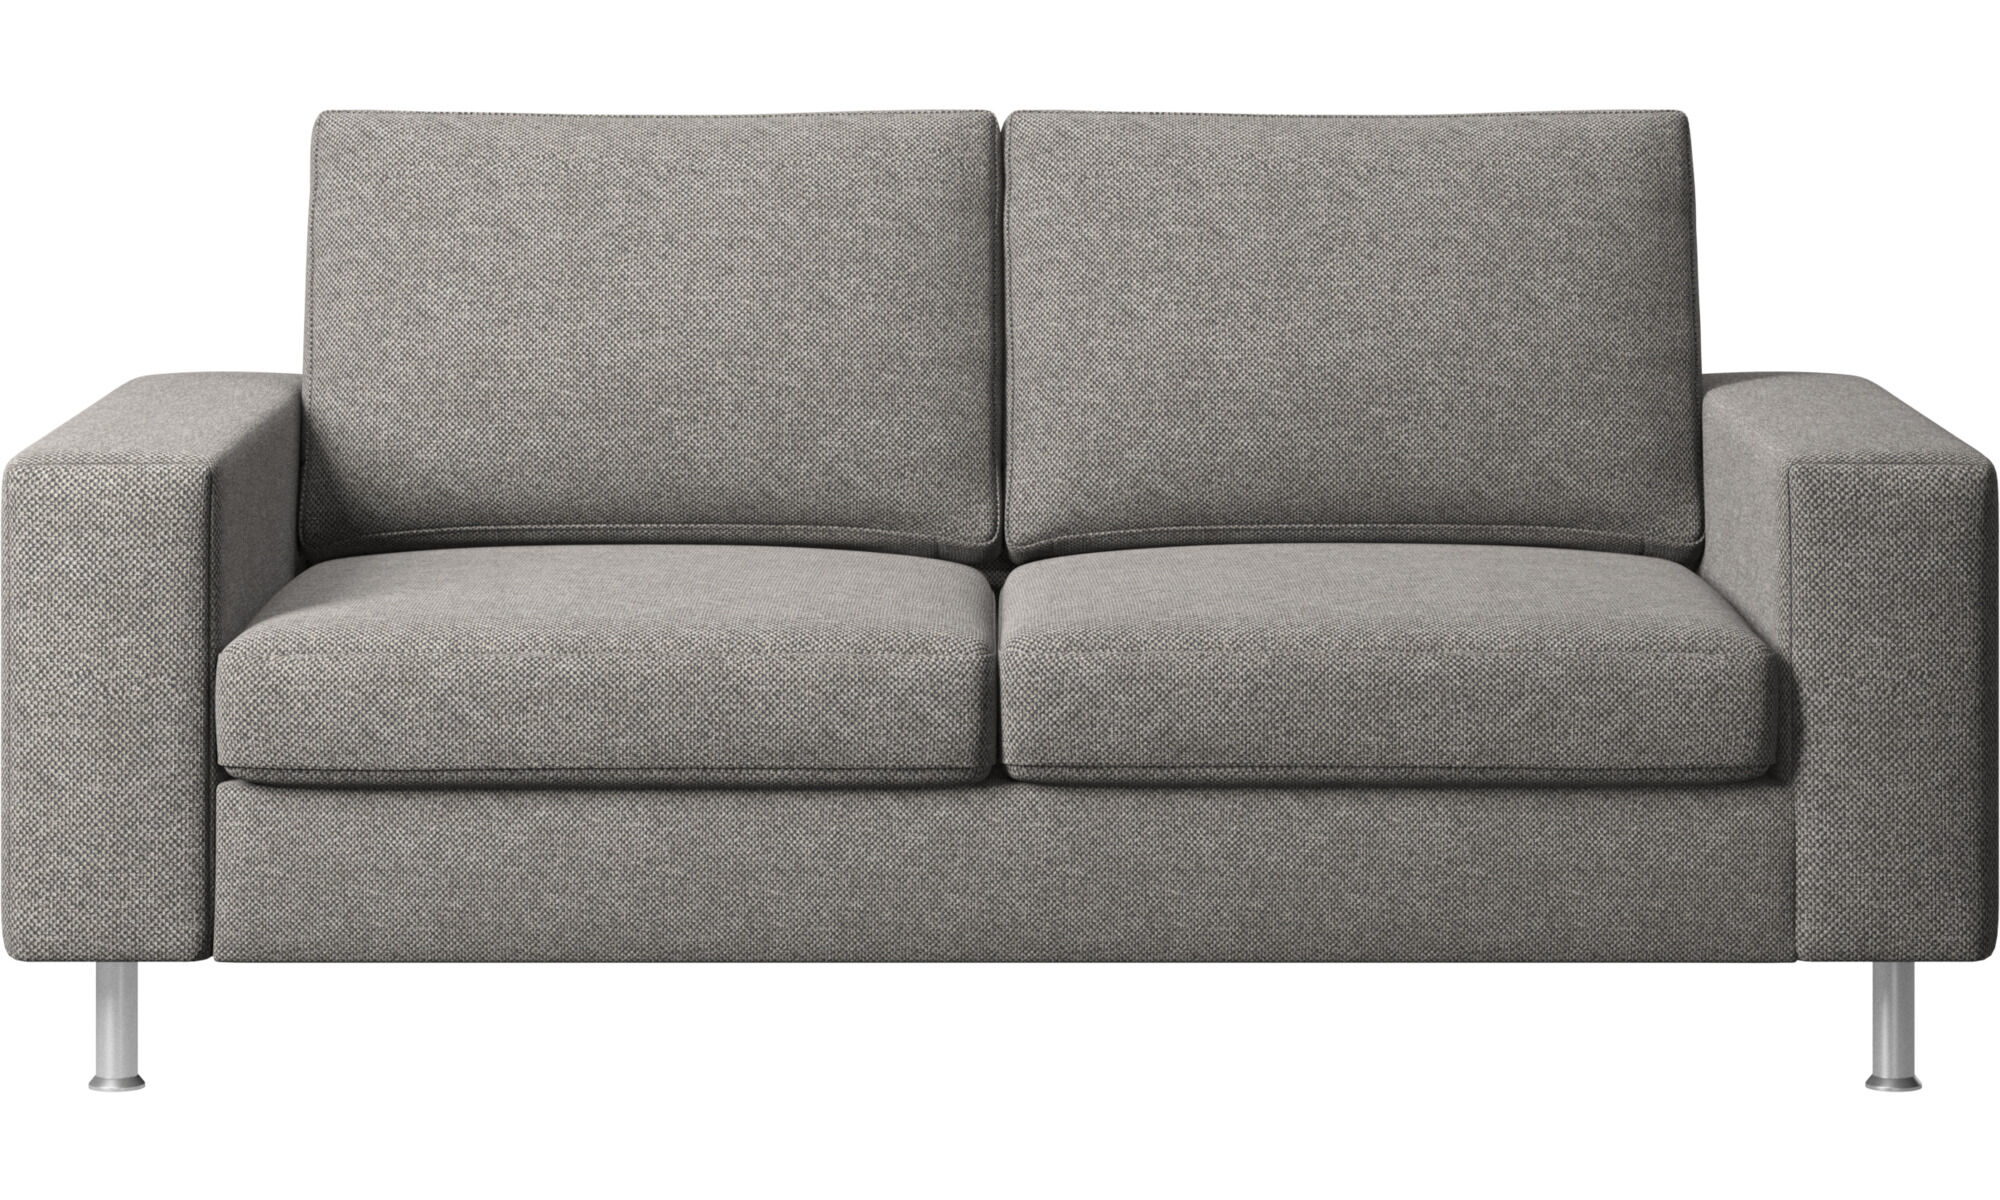 2 seater sofas - Ini 2 sofa - Gray - Fabric  sc 1 st  BoConcept : two seater chair - Cheerinfomania.Com